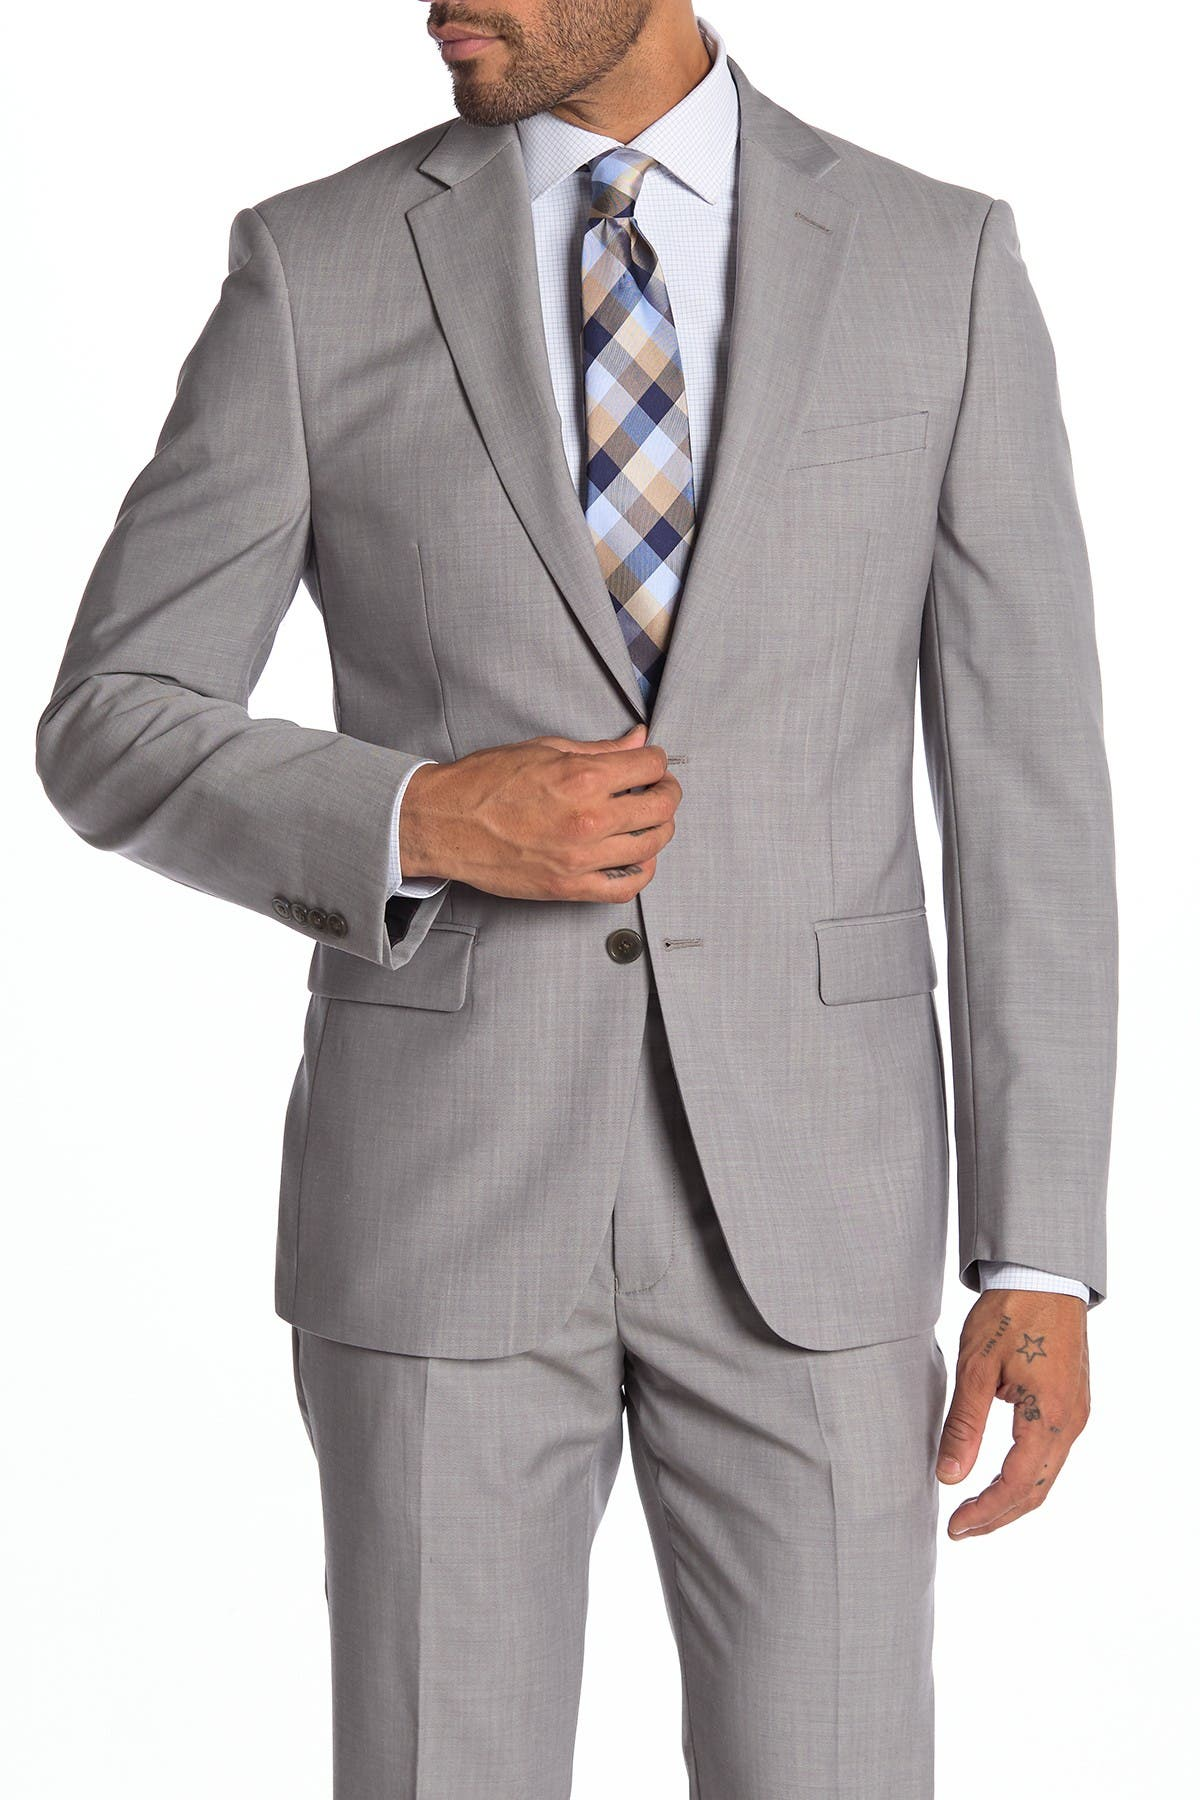 Image of Calvin Klein Malbin Two Button Notch Collar Slim Fit Wool Suit Separates Jacket